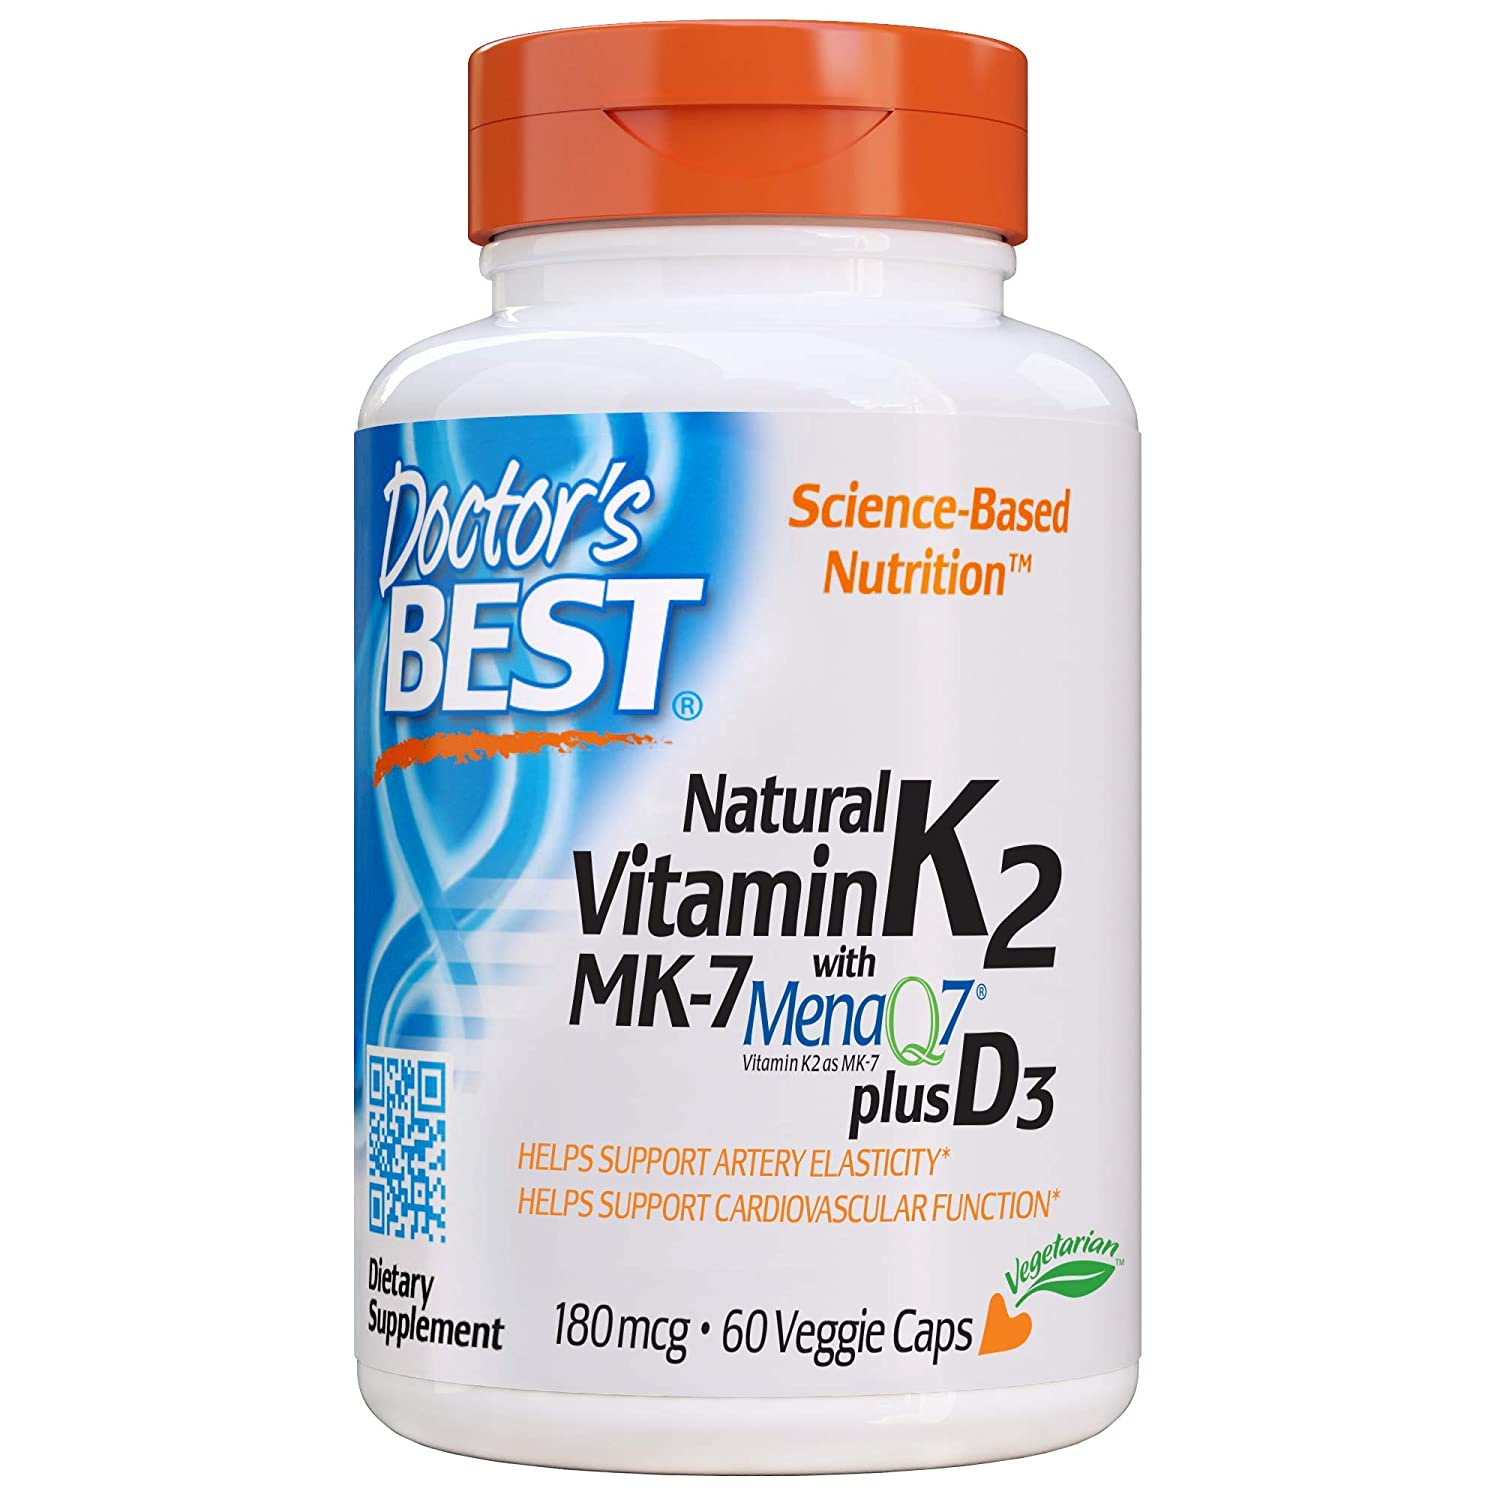 Doctors Best Vitamina Natural K2 Mk7 Con Menaq7 Plus D3, 180Mcg ...